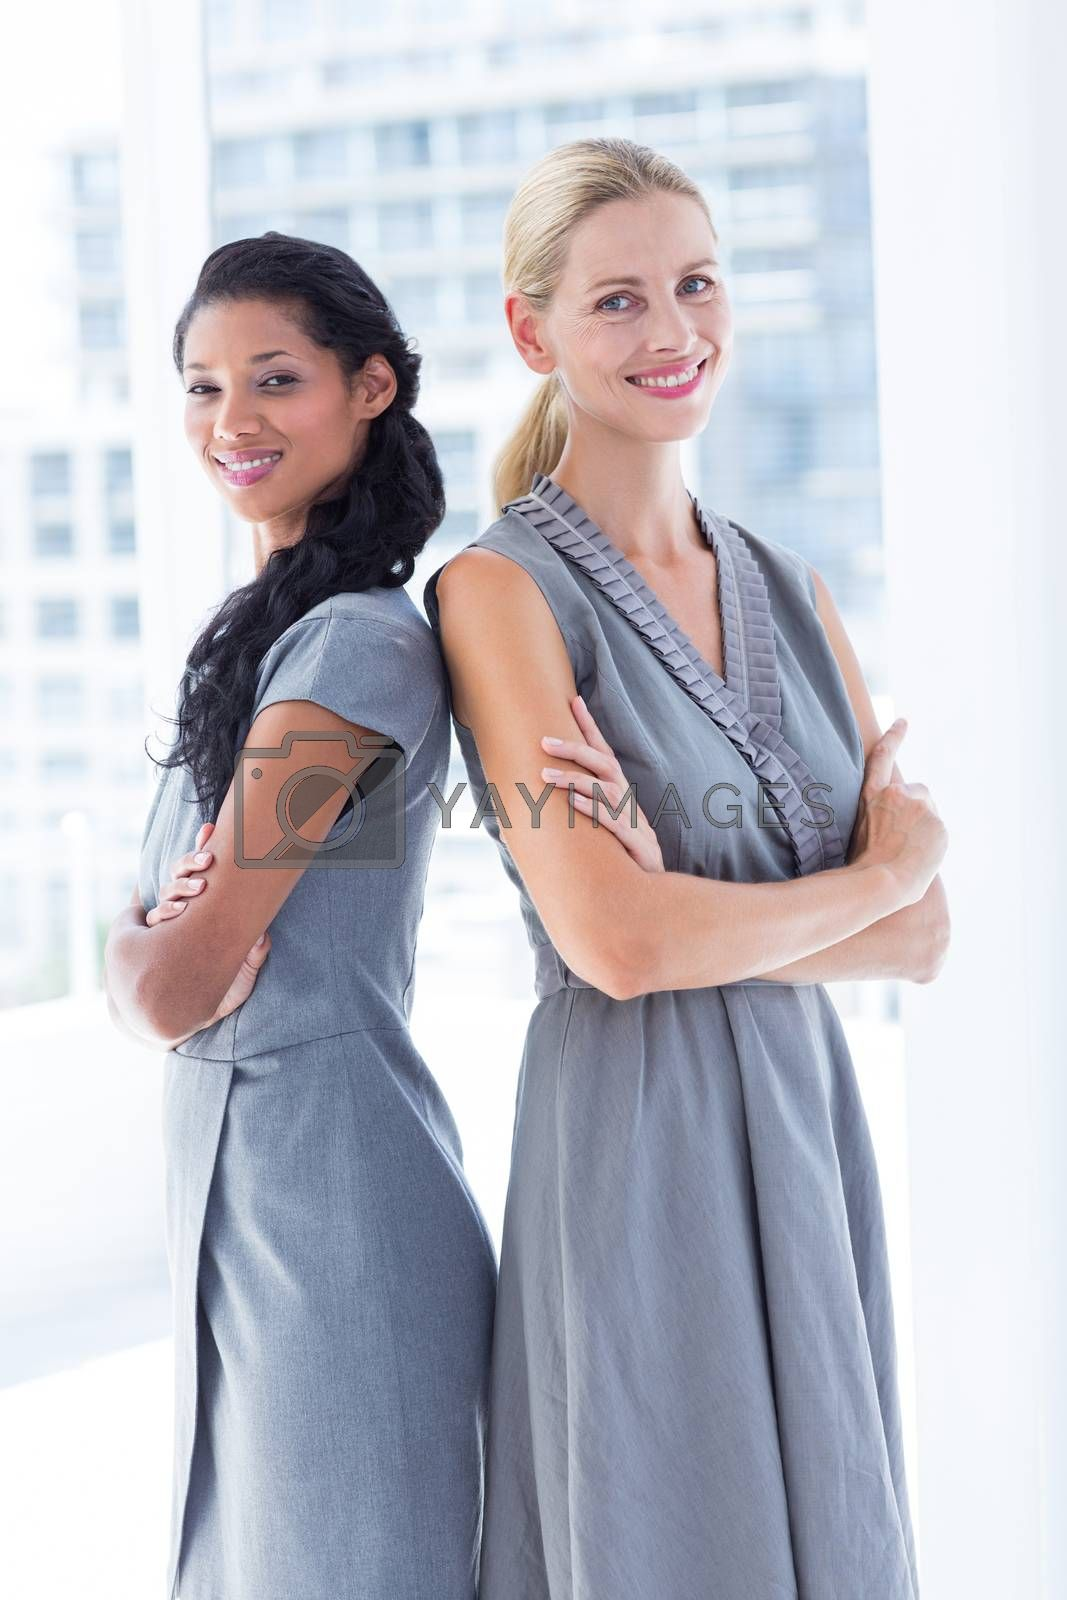 Royalty free image of Back to back businesswomen looking at the camera by Wavebreakmedia